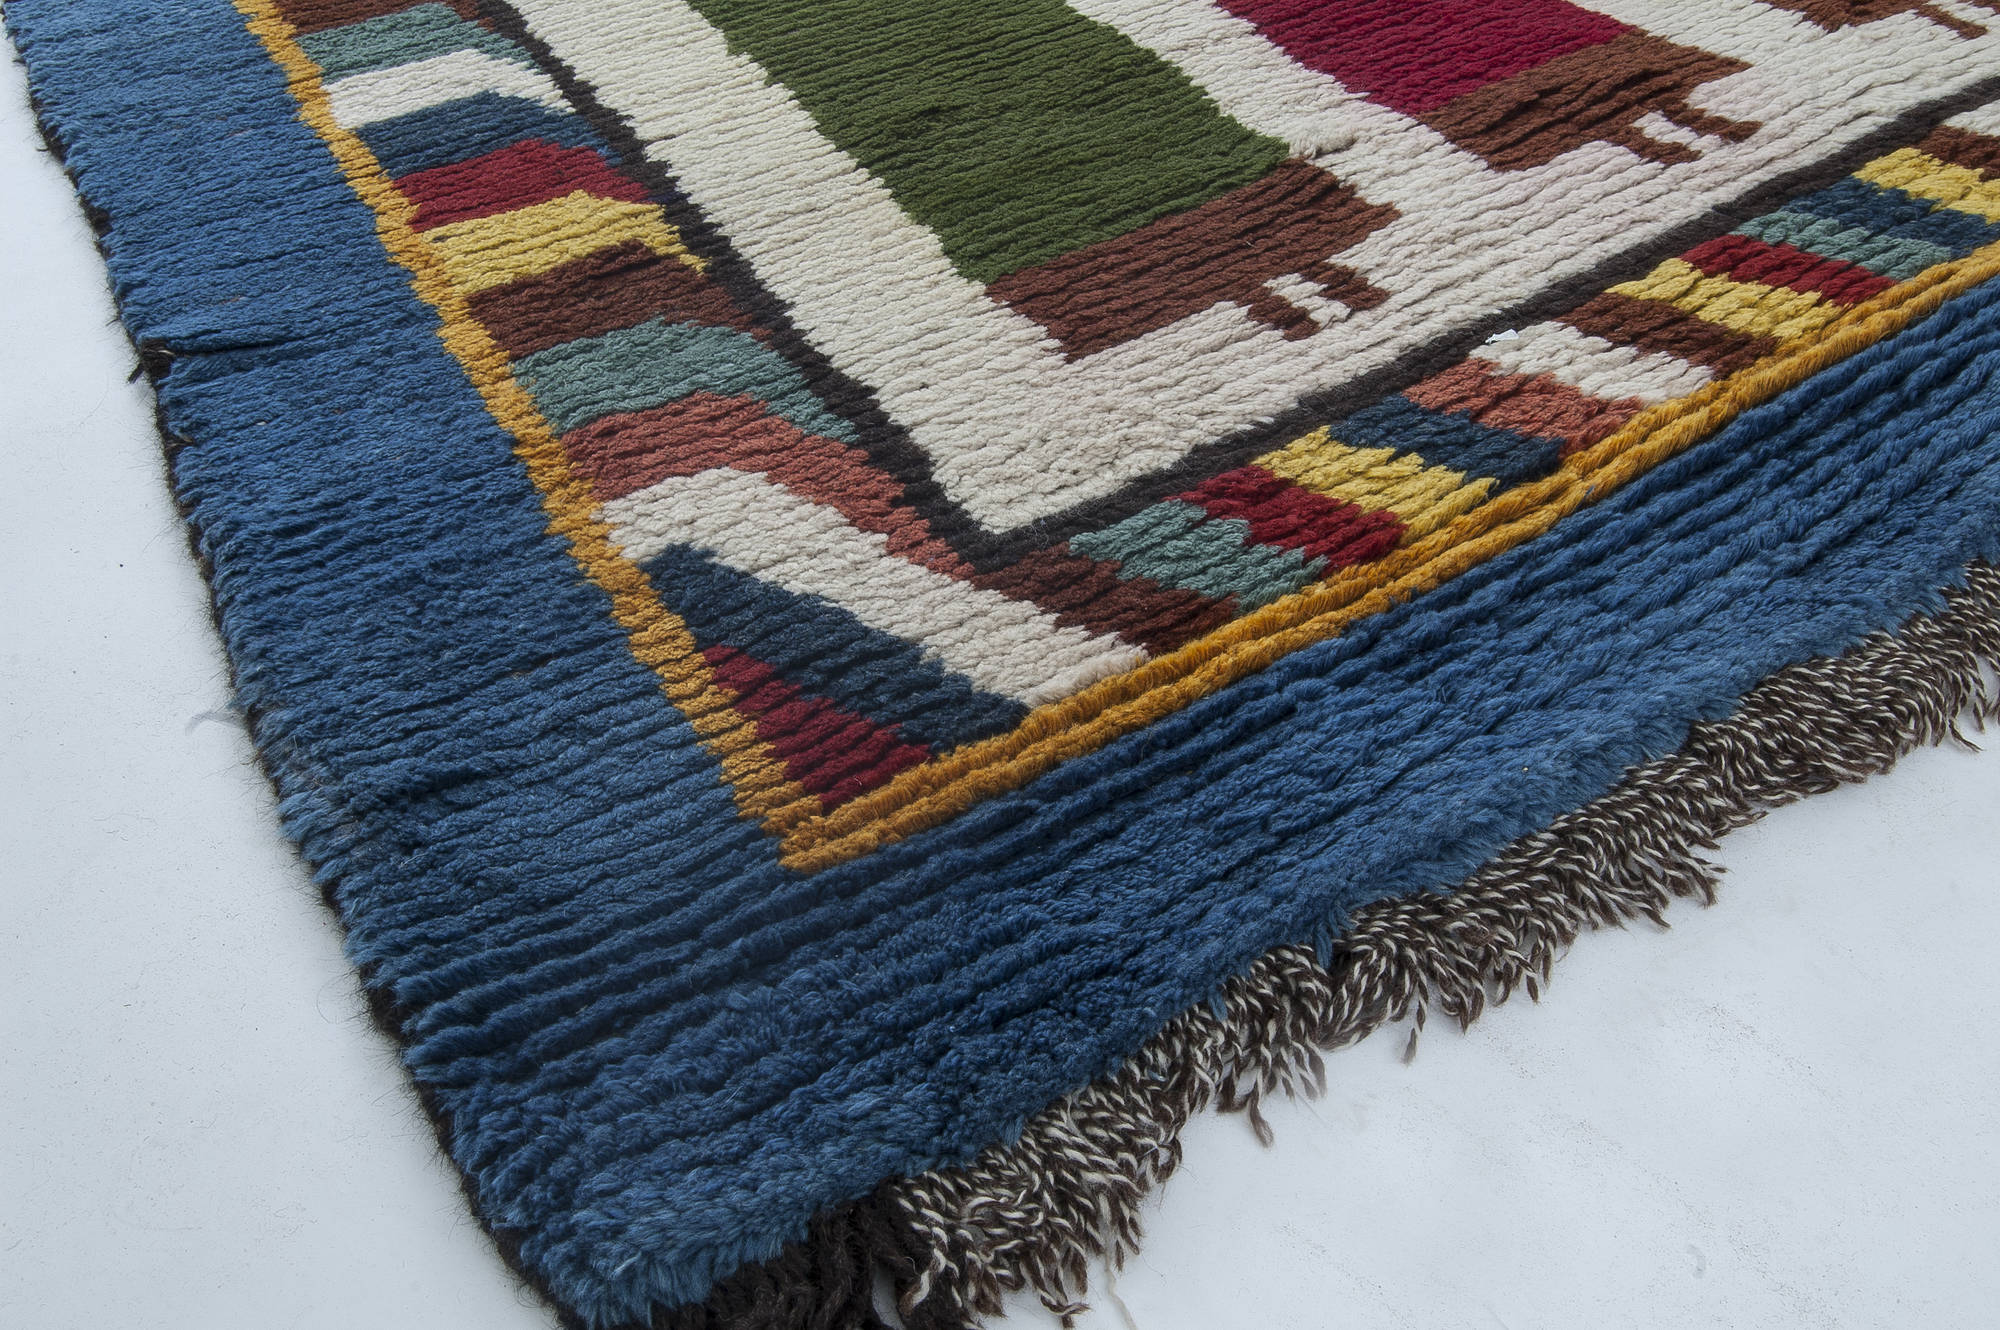 Moroccan Midcentury Red Green Yellow And Navy Blue Handwoven Rug Bb6333 By Dlb